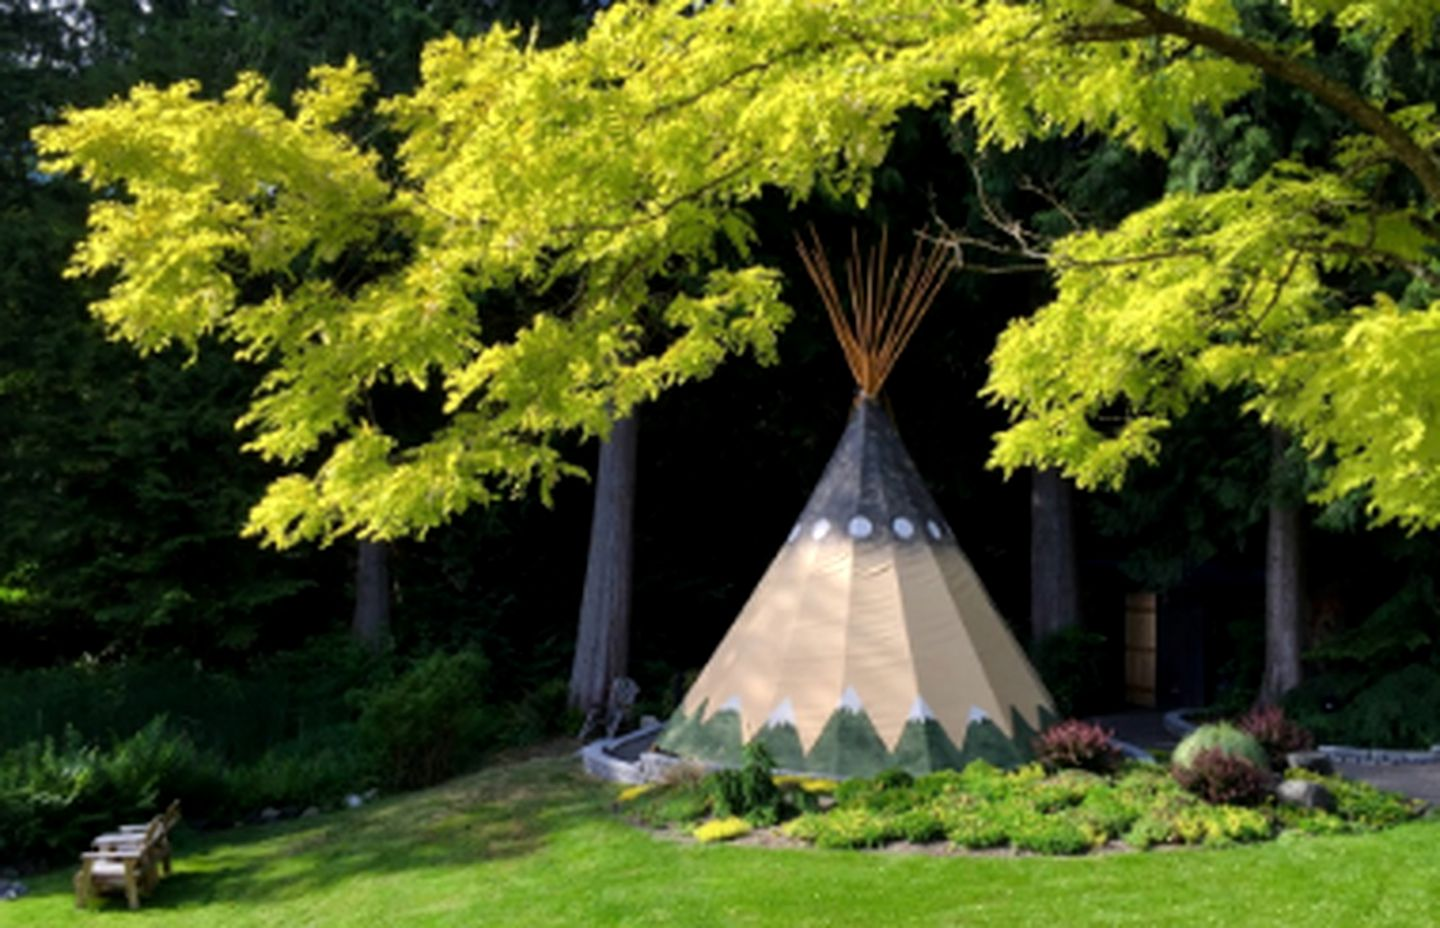 Tipis (Bainbridge Island, Washington, United States)